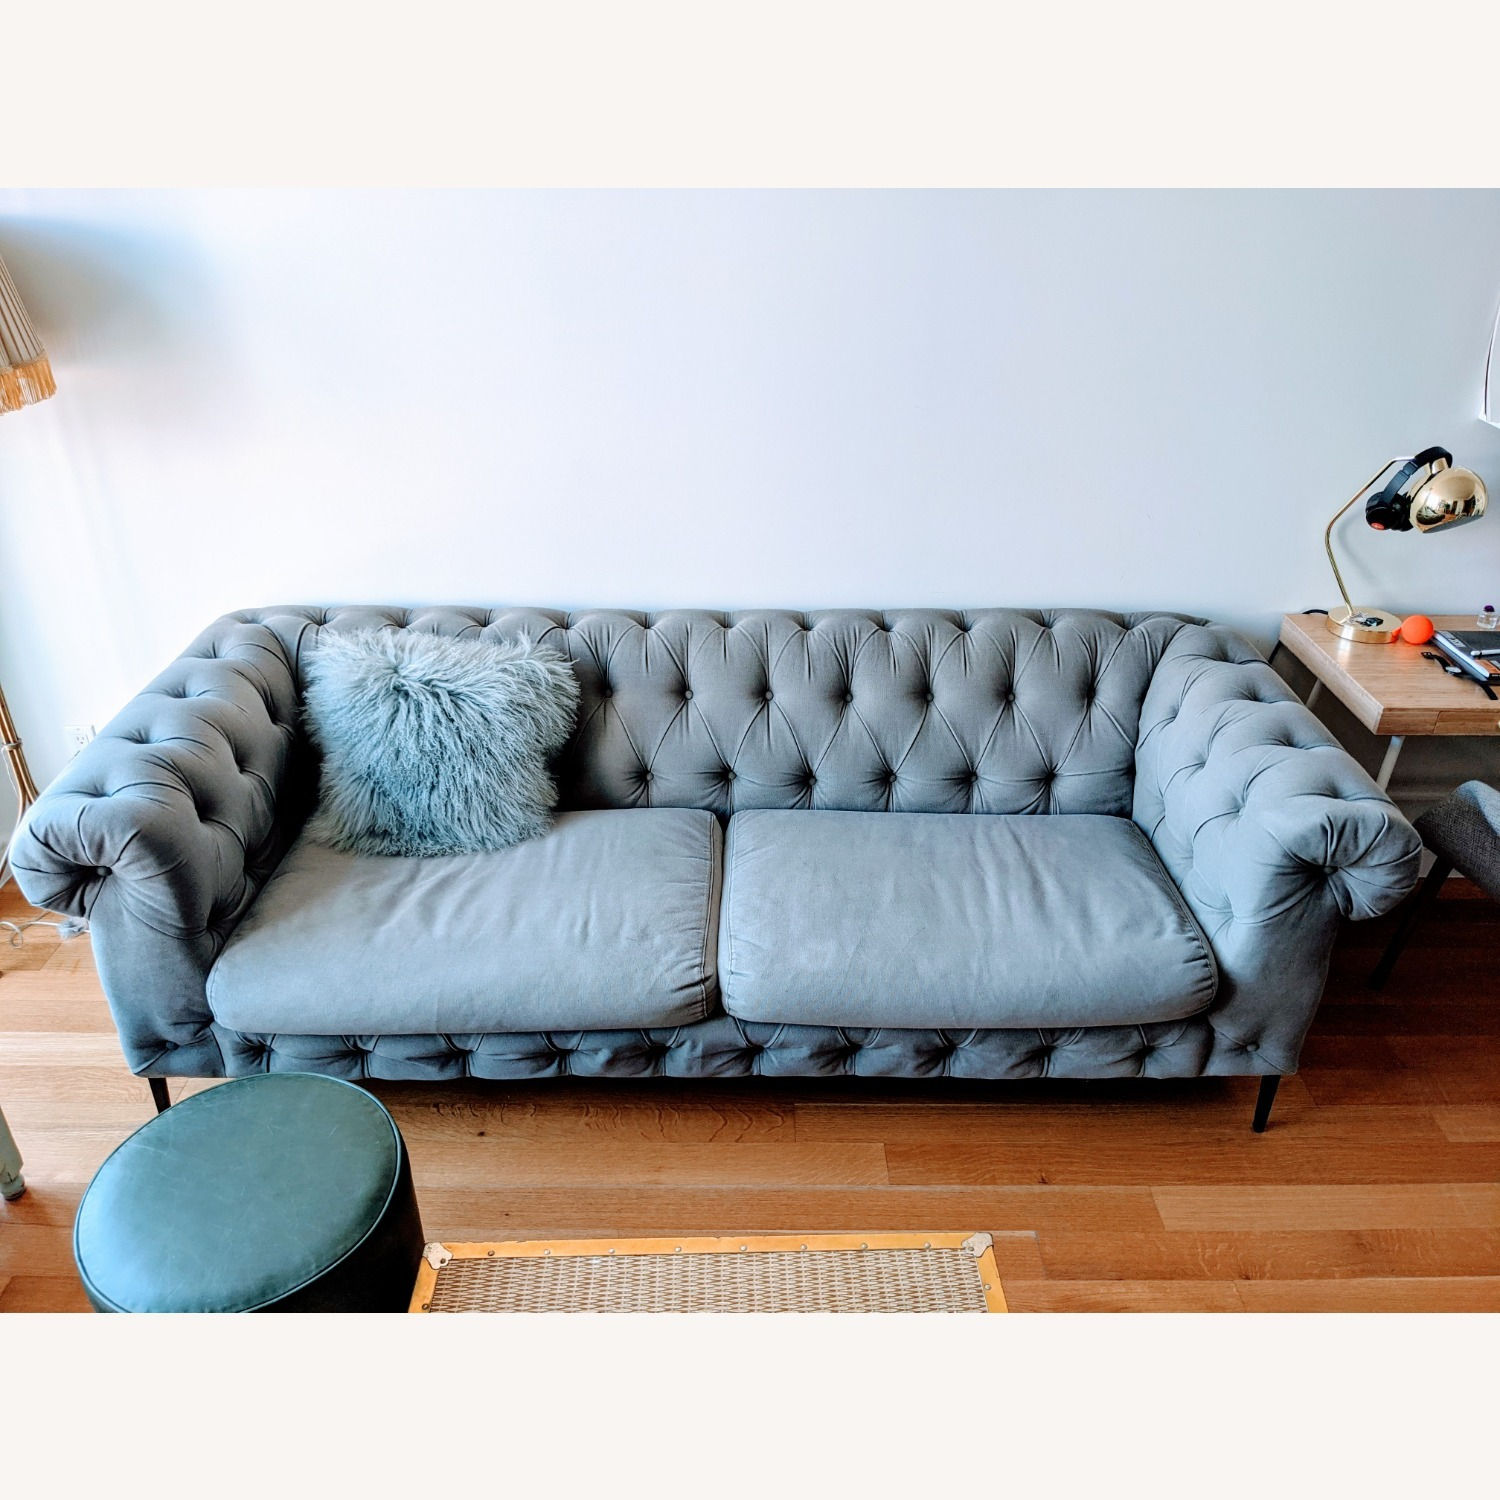 Anthropologie Canal Tufted Sofa - image-1